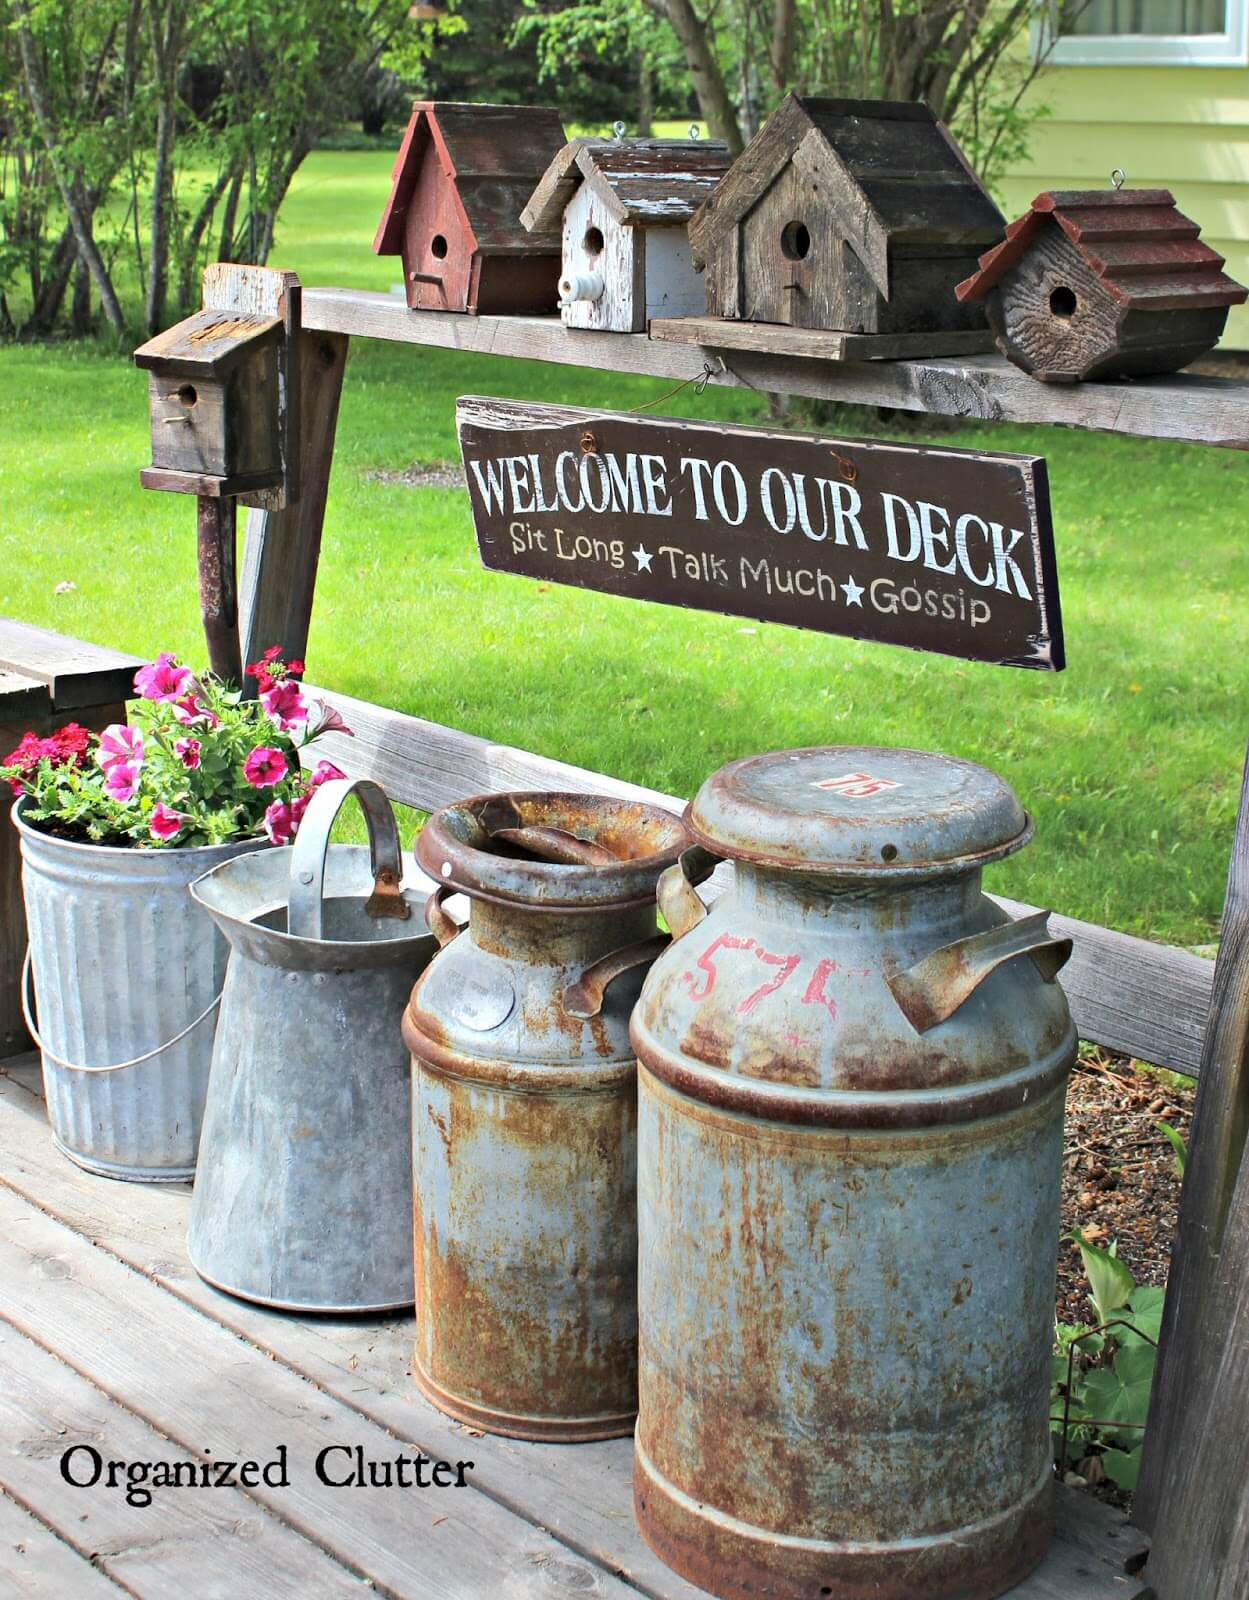 Vintage Garden Decor Ideas: Vintage Birdhouse and Milk Can Decor Idea